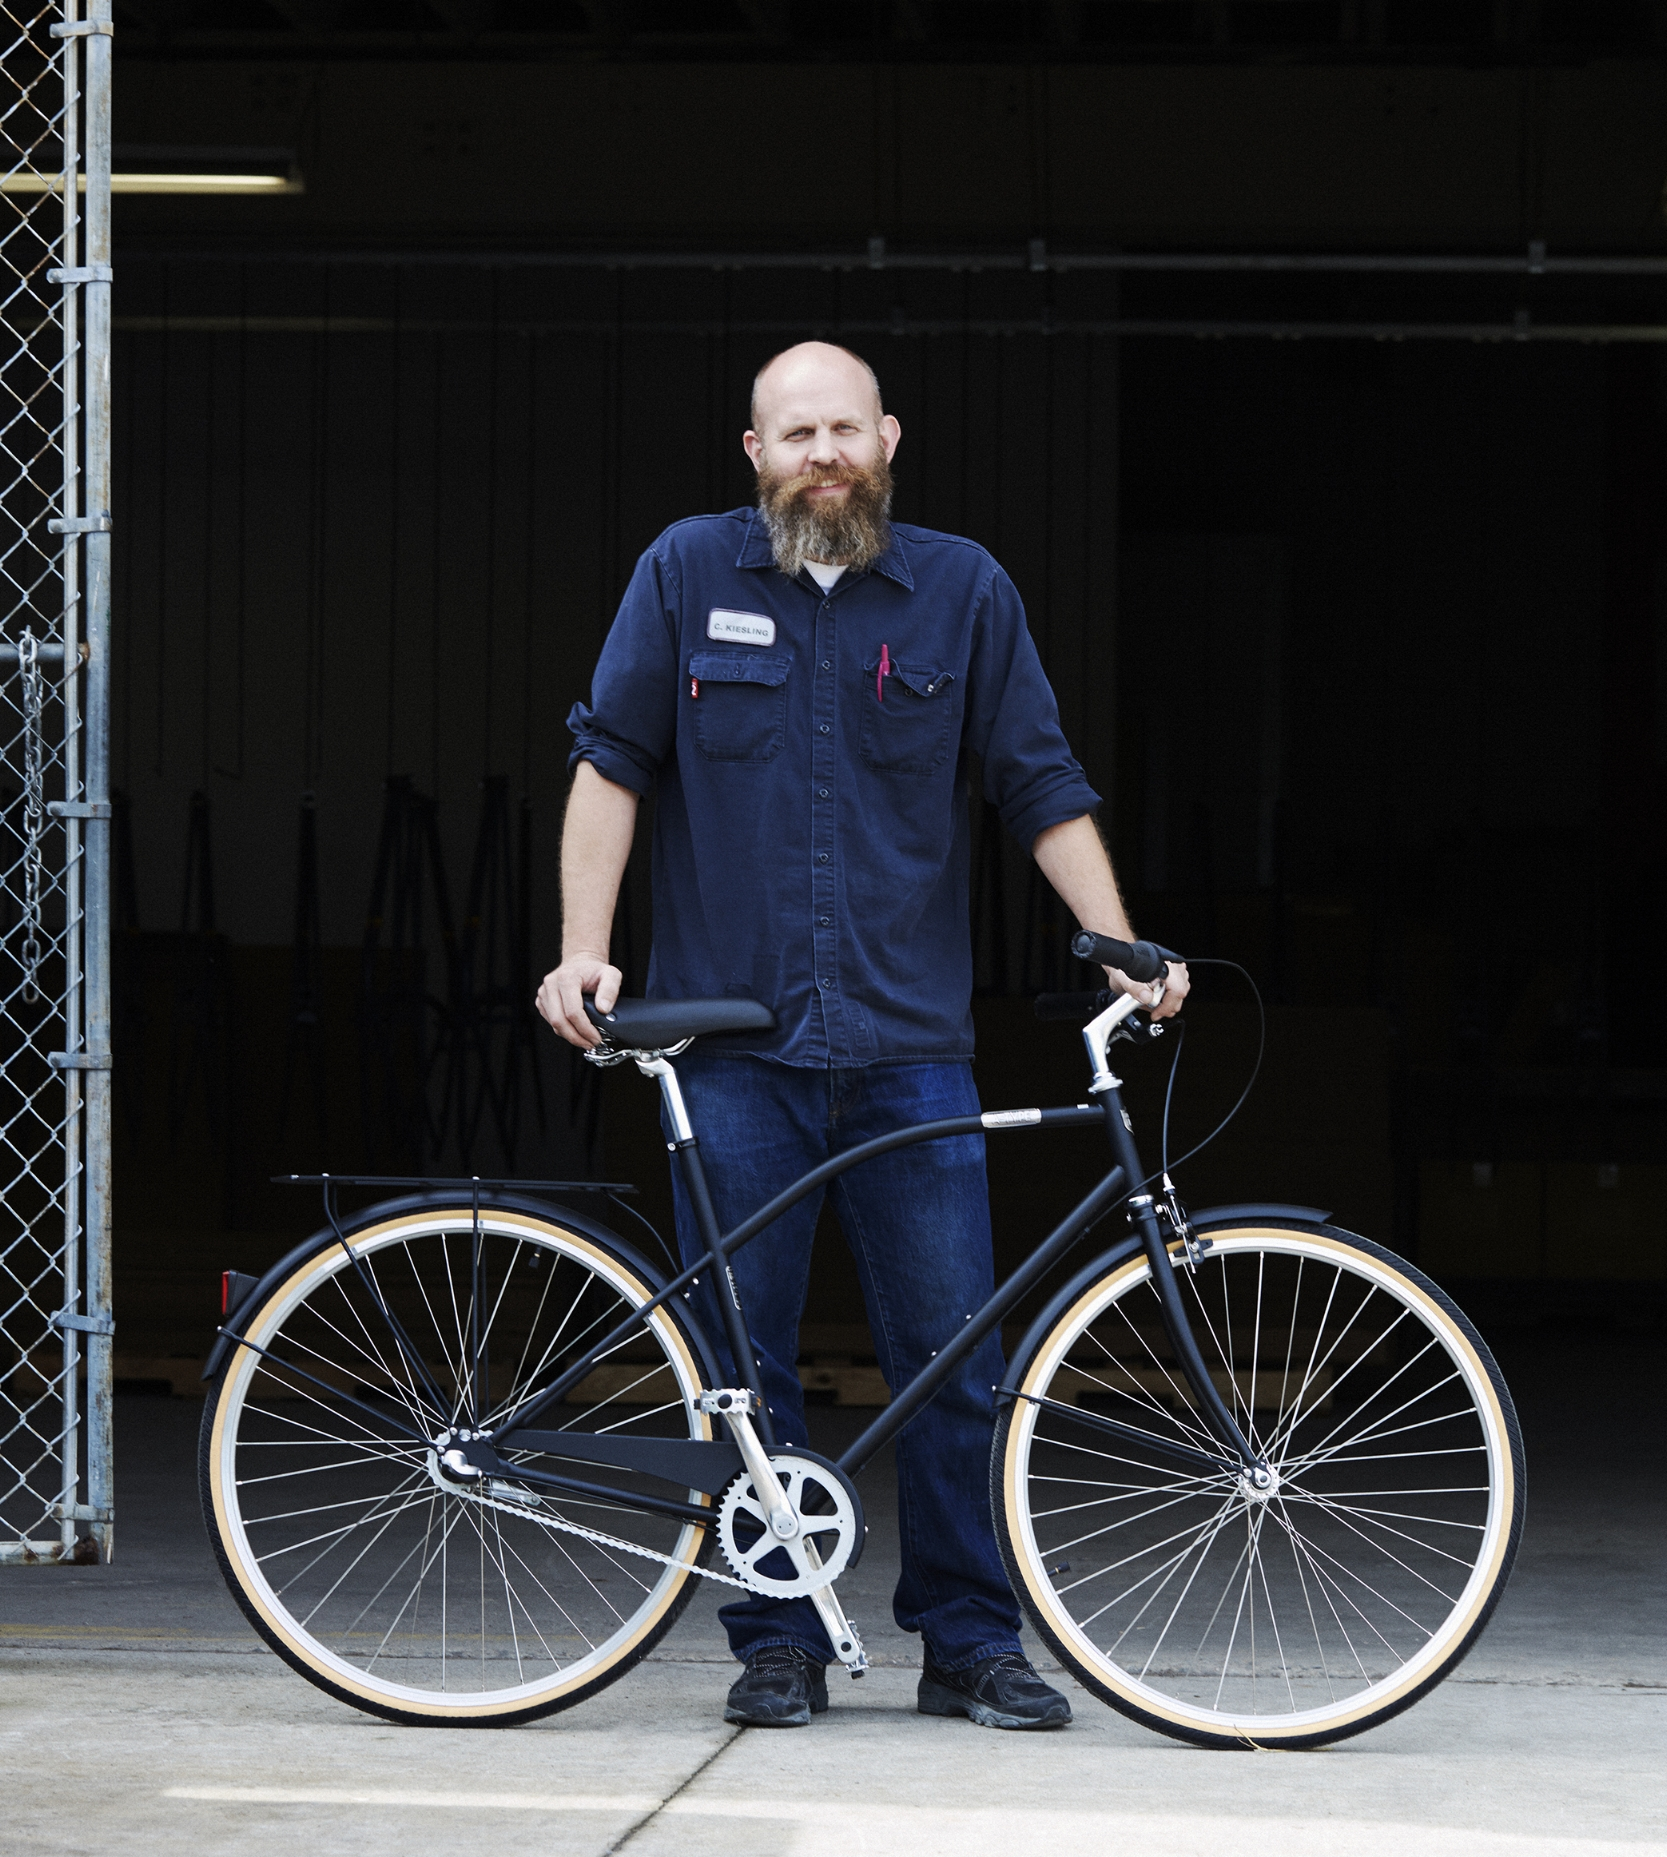 Chris poses with the Type-A in front of the Detroit Bikes Factory.